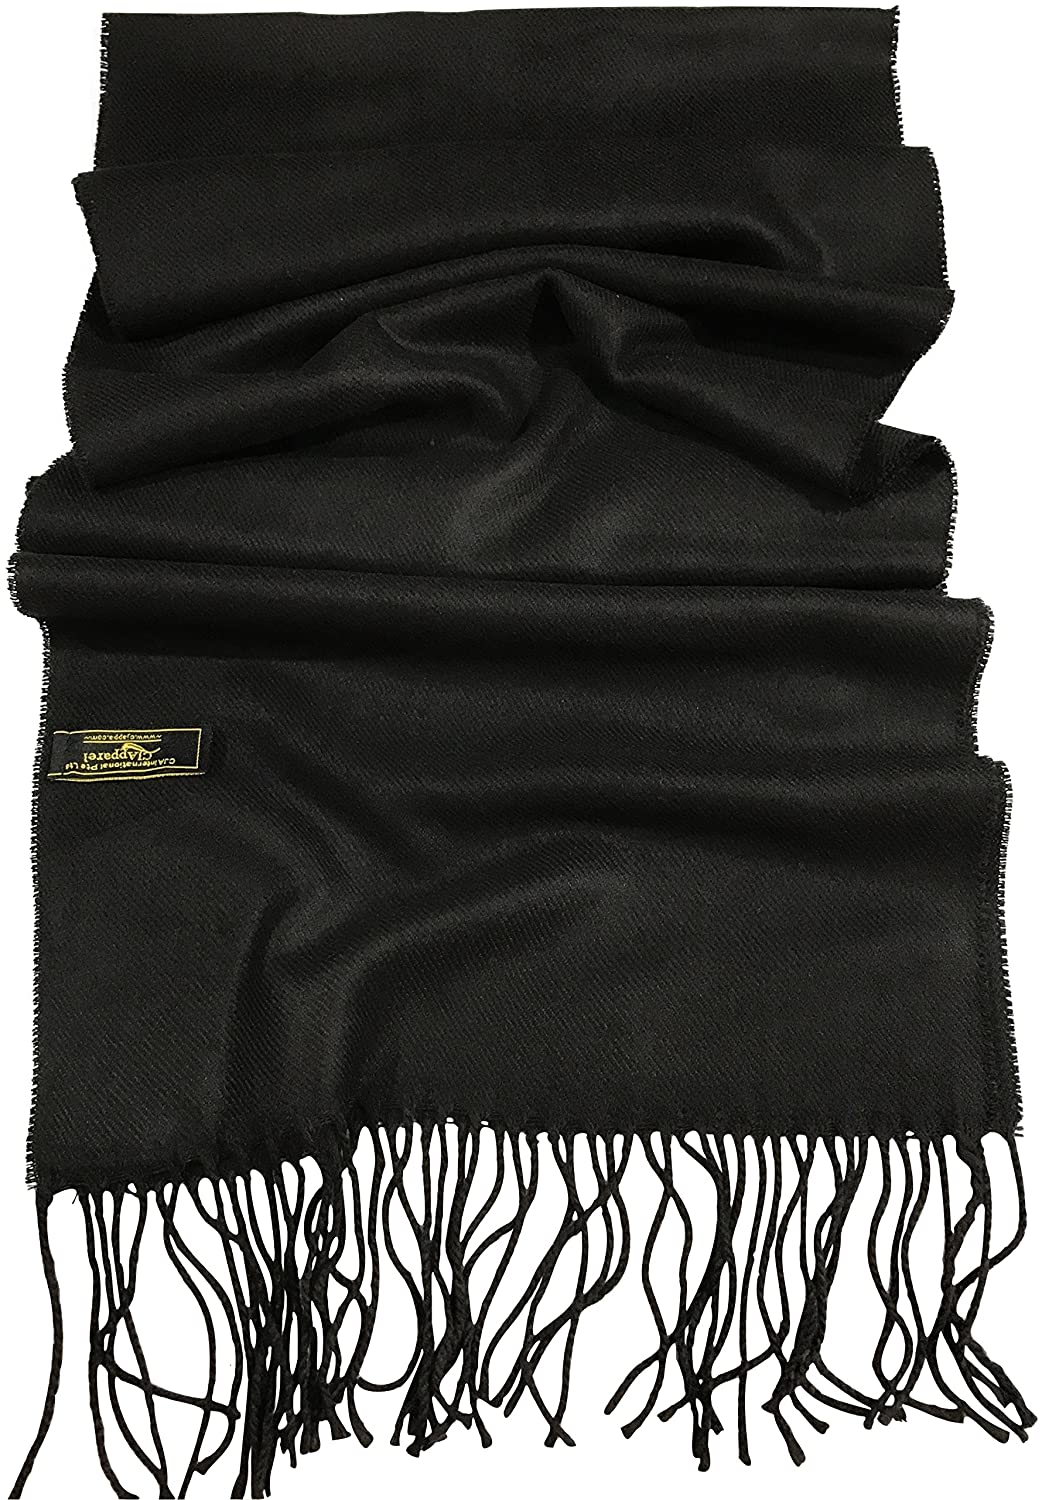 Black Mens Solid Colour Design Fashion Knitted Scarf Fall//Winter CJ Apparel NEW